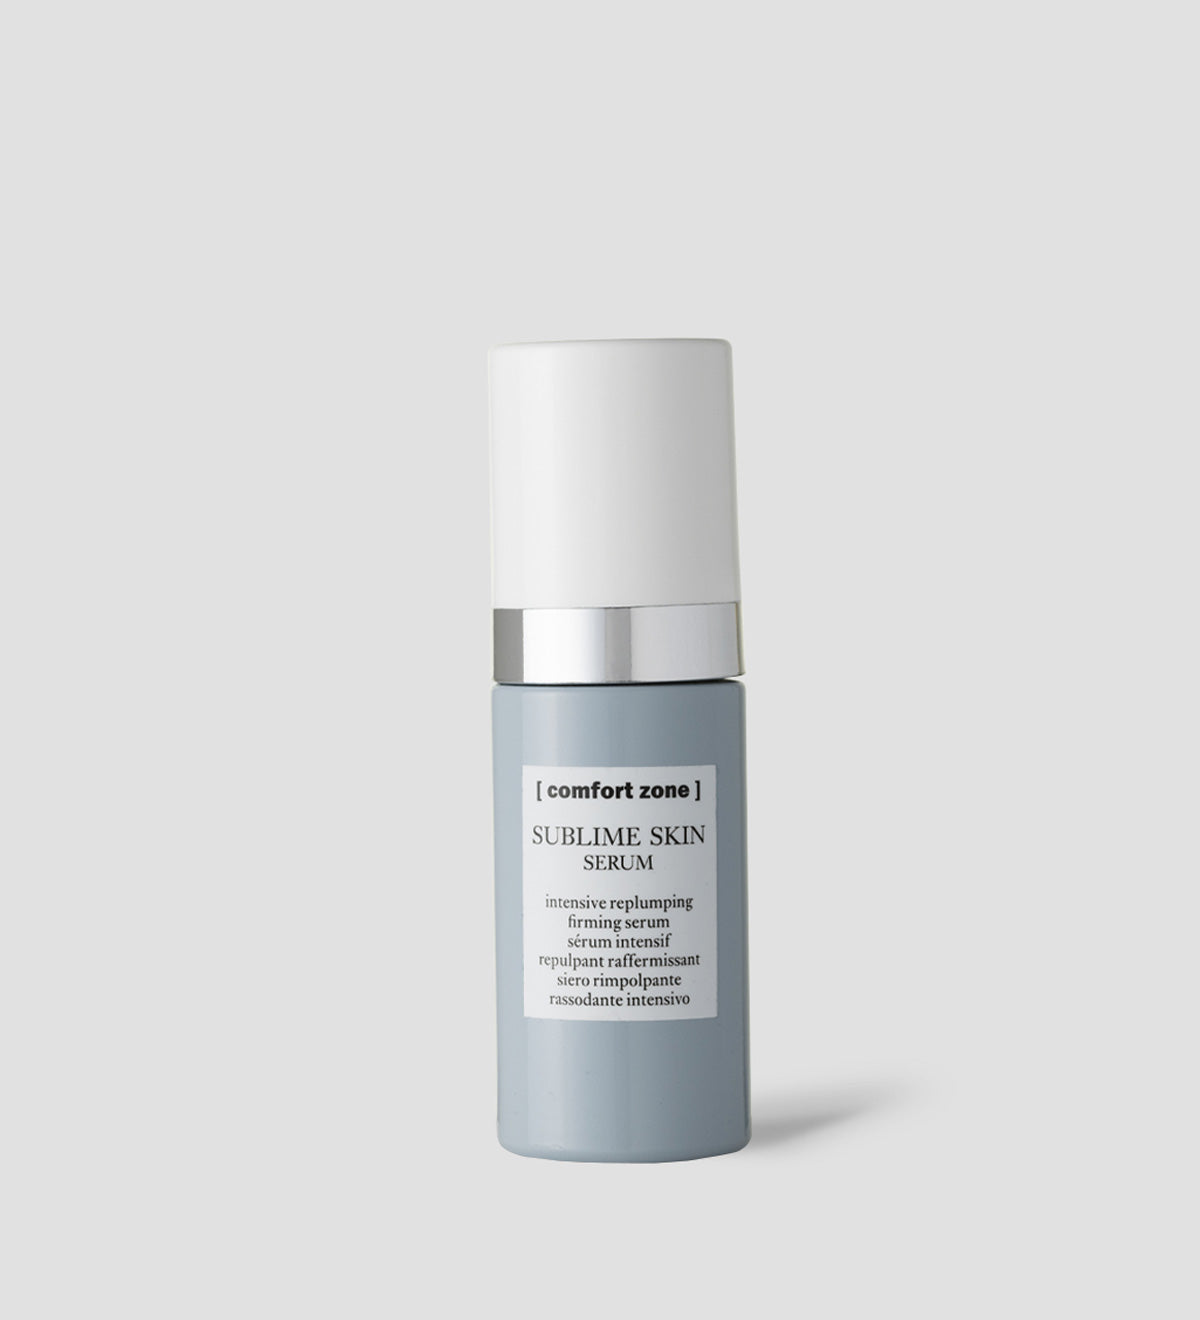 Comfort Zone: SUBLIME SKIN SERUM Replumping firming serum-1